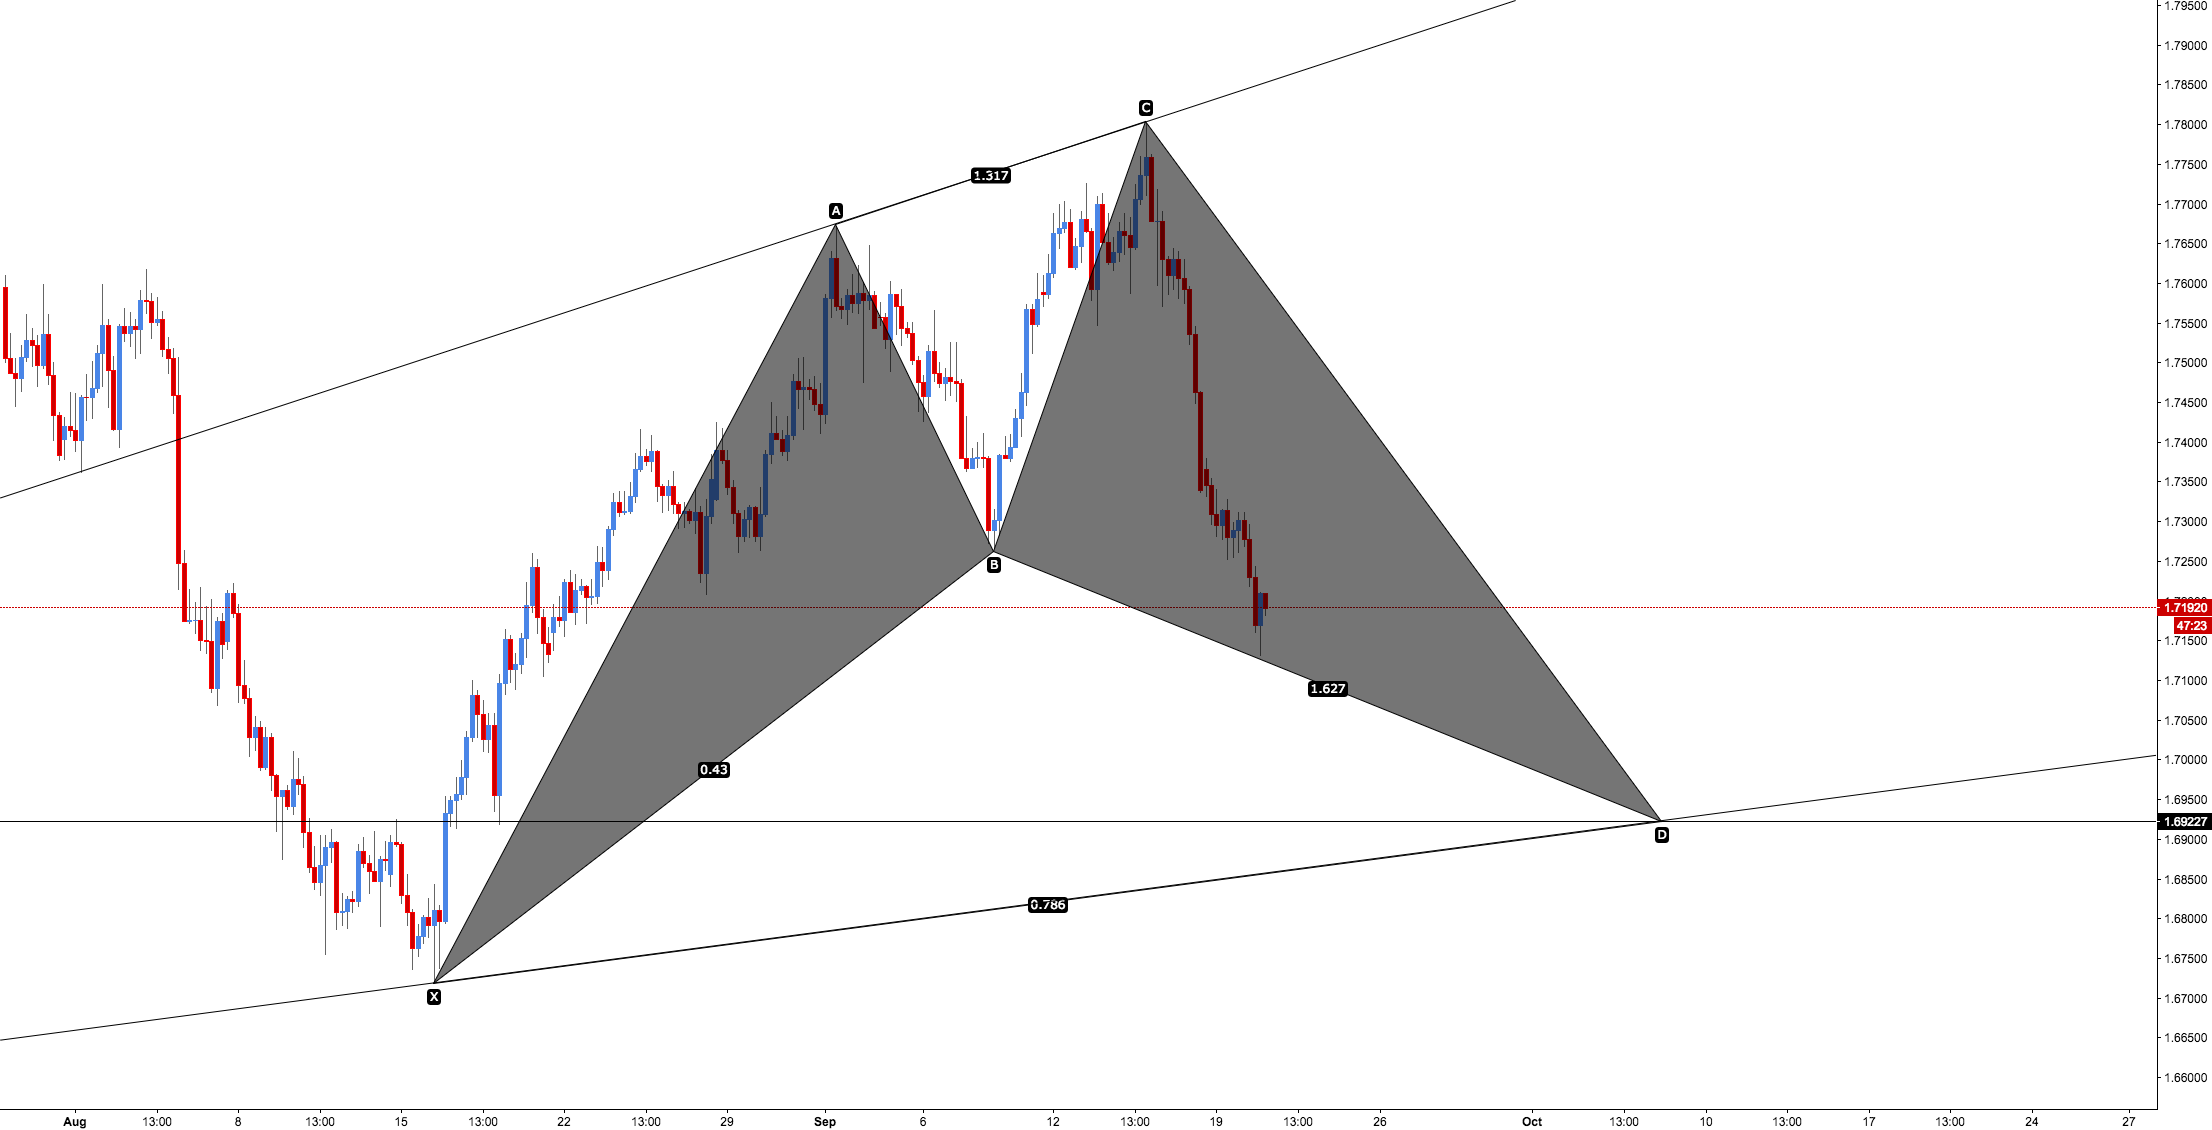 GBP/AUD - Bullish Cypher